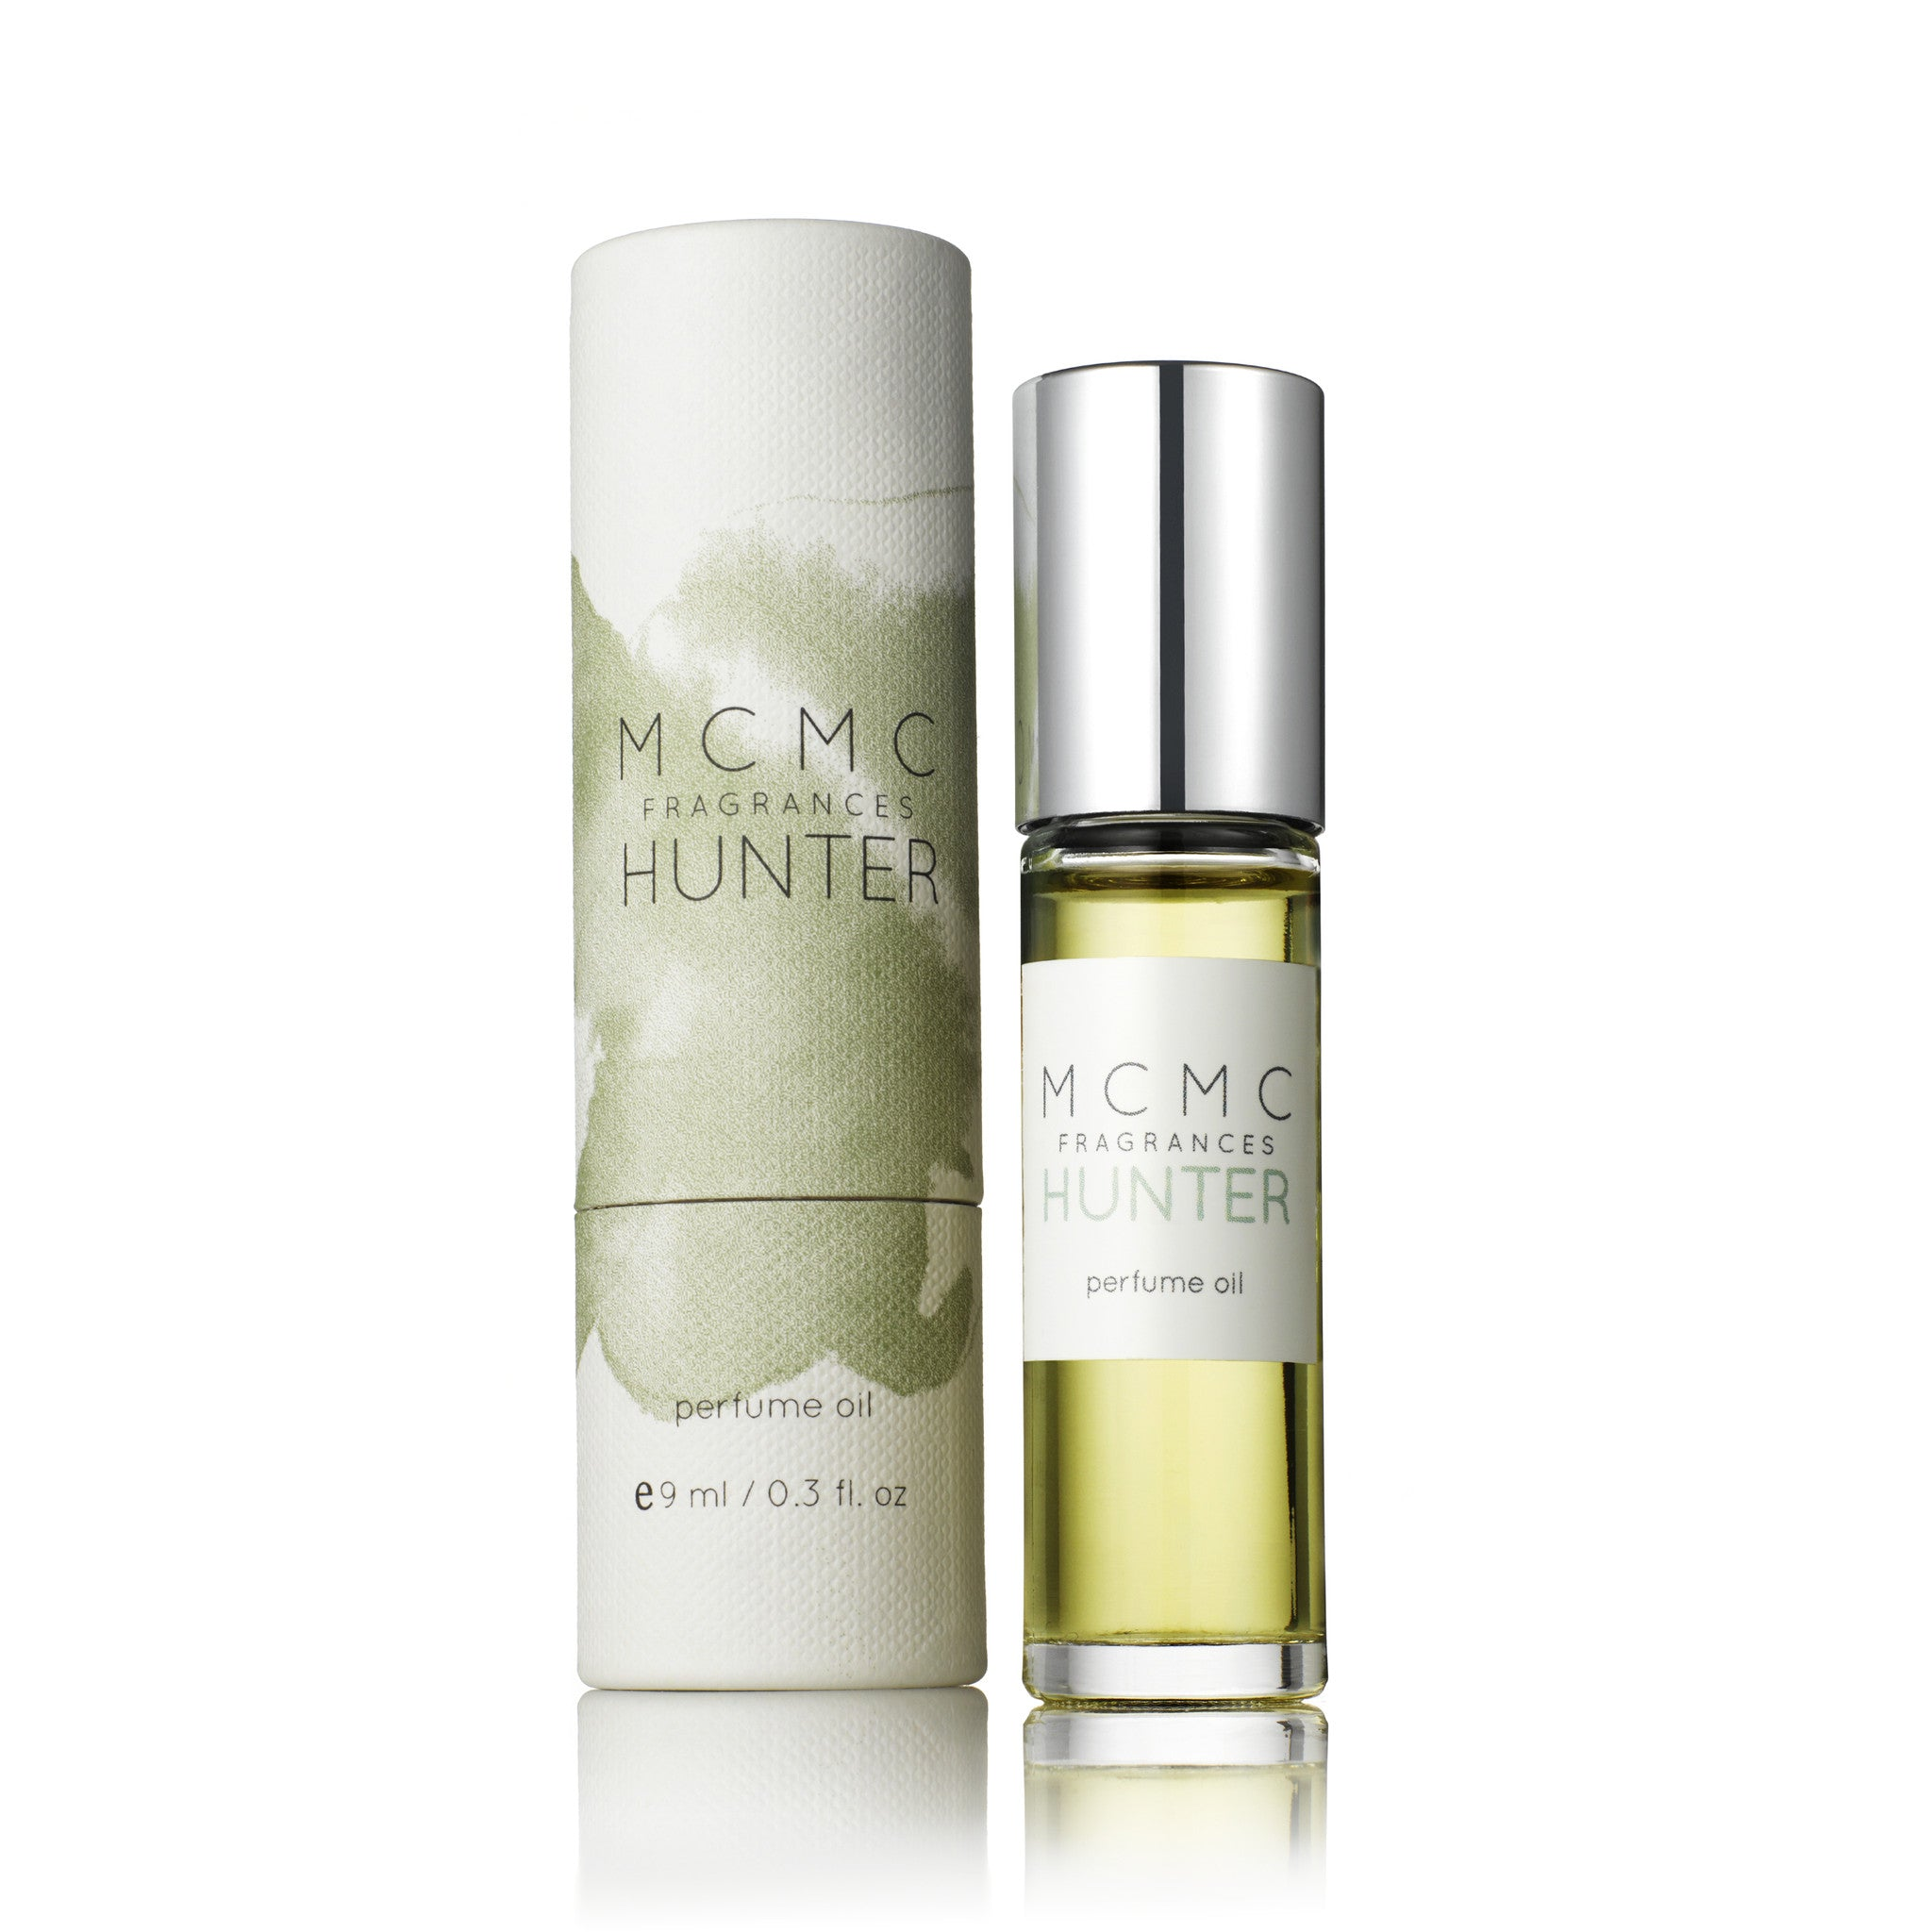 Hunter 10ml Perfume Oil Mcmc Fragrances